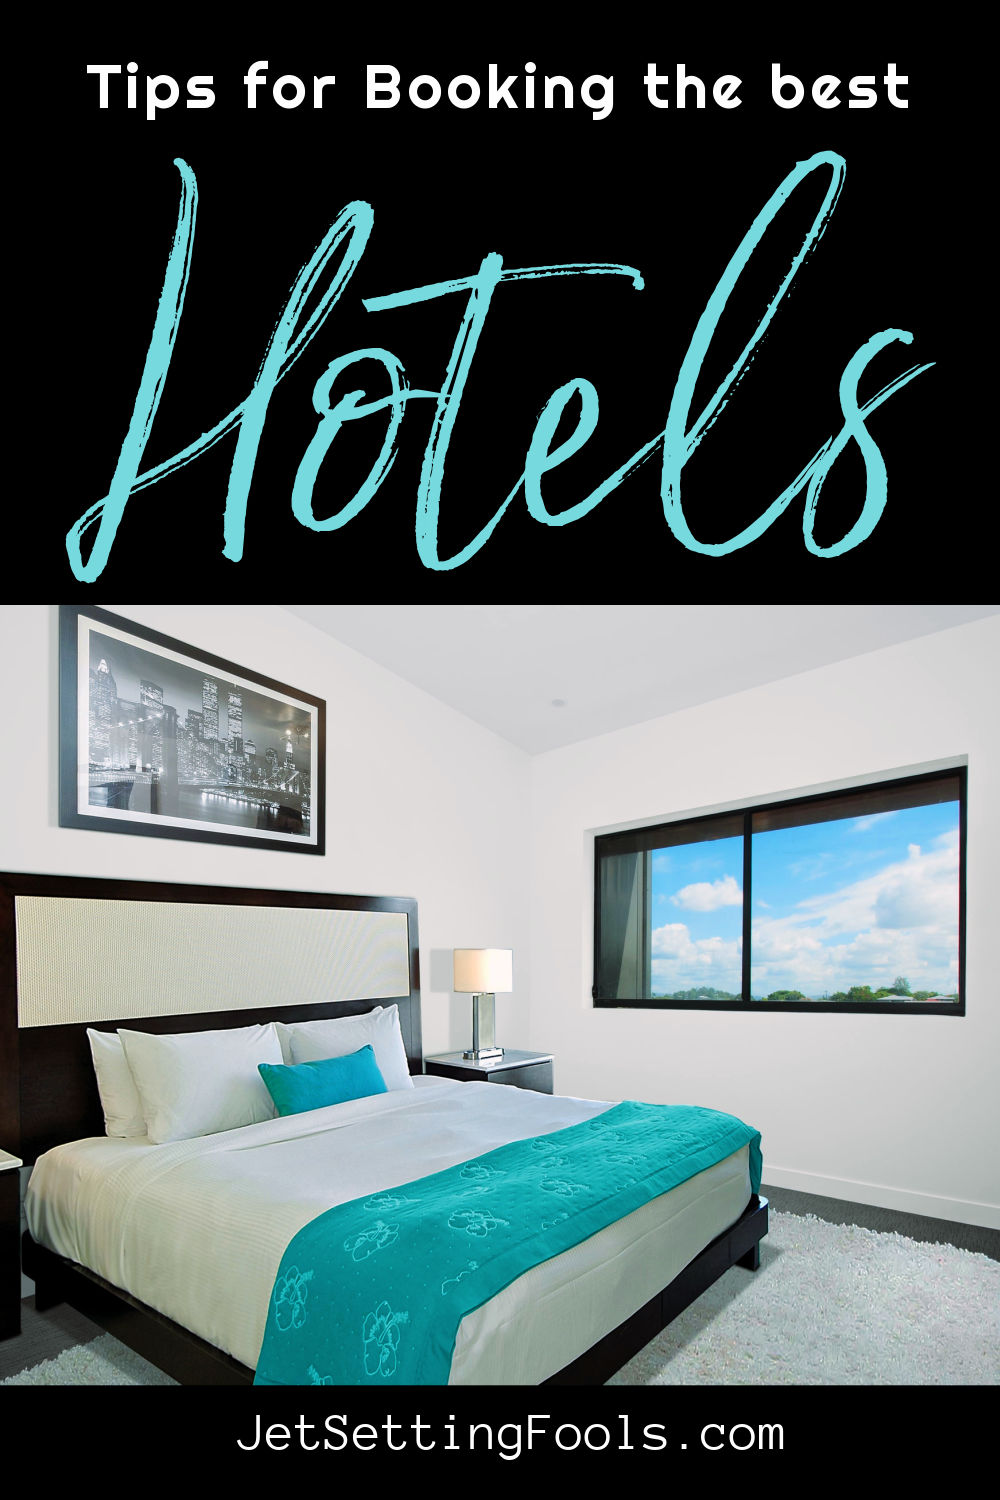 Tips for Booking the Best Hotels by JetSettingFools.com